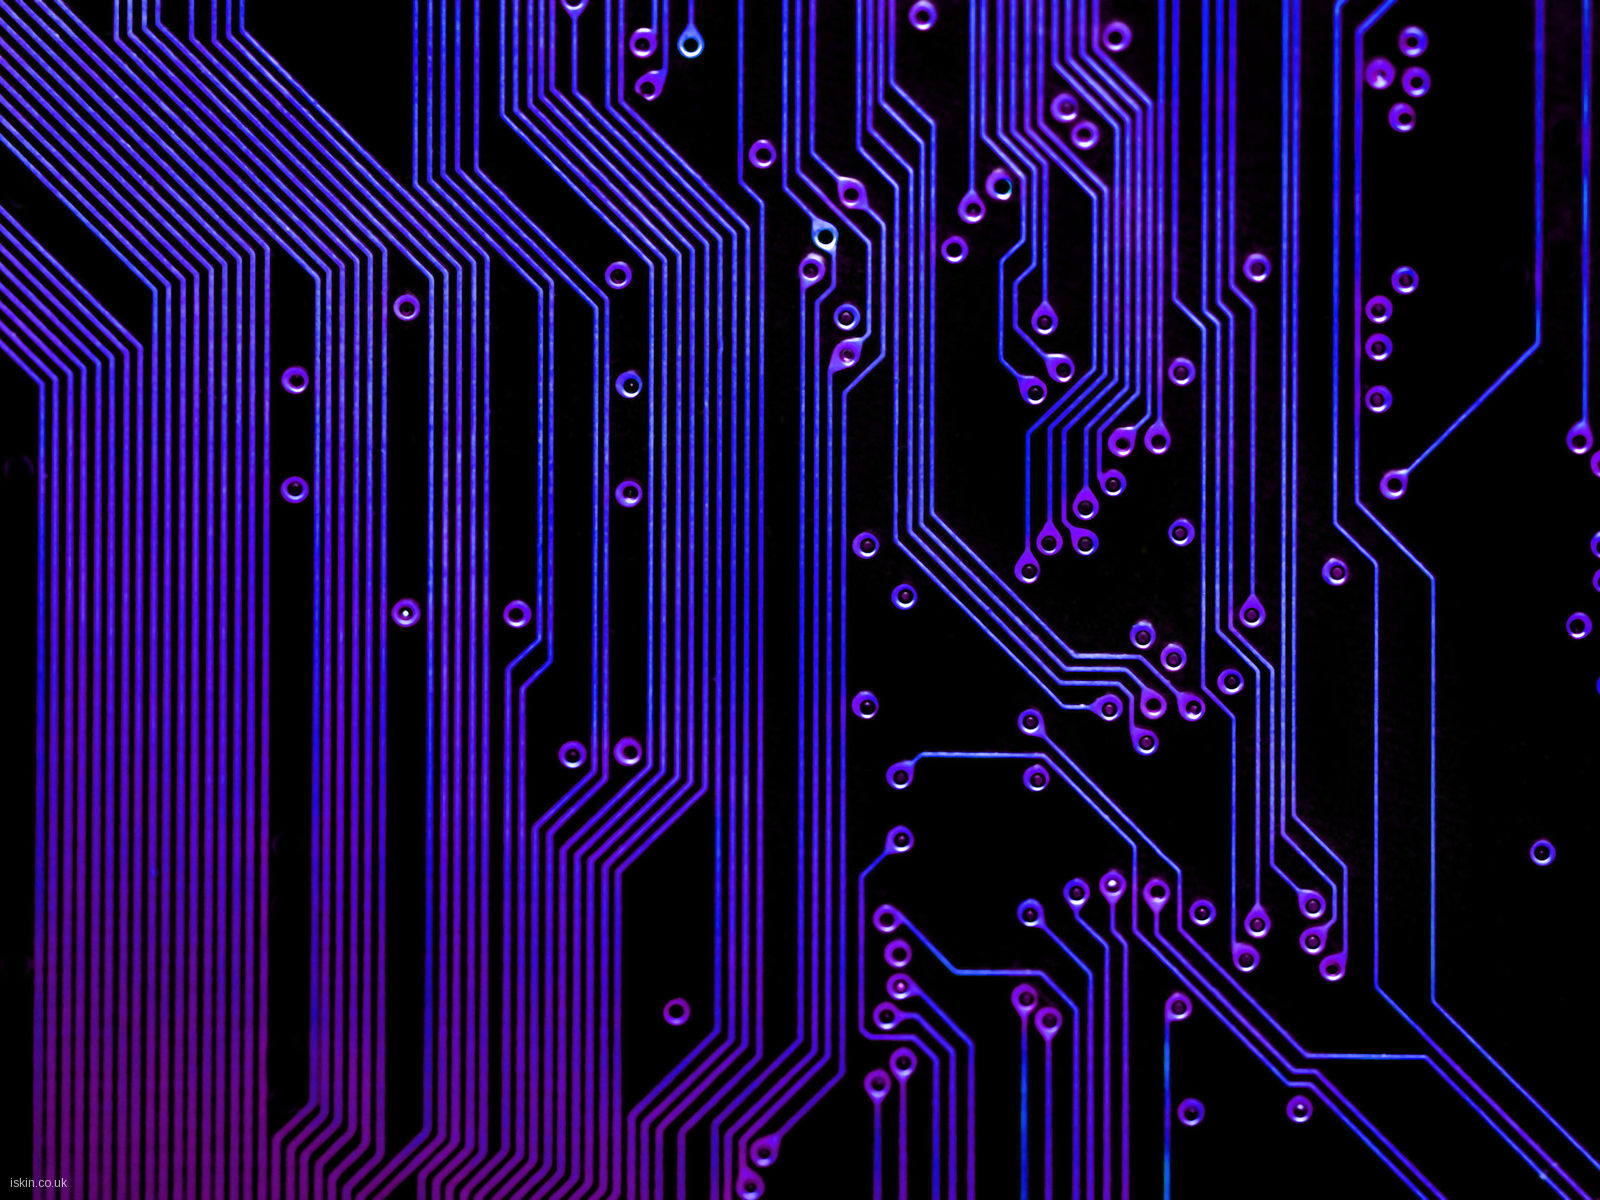 circuits wallpaper wallpapersafari rh wallpapersafari com Code Hacker Desktop Background 4K Circuit Board Desktop